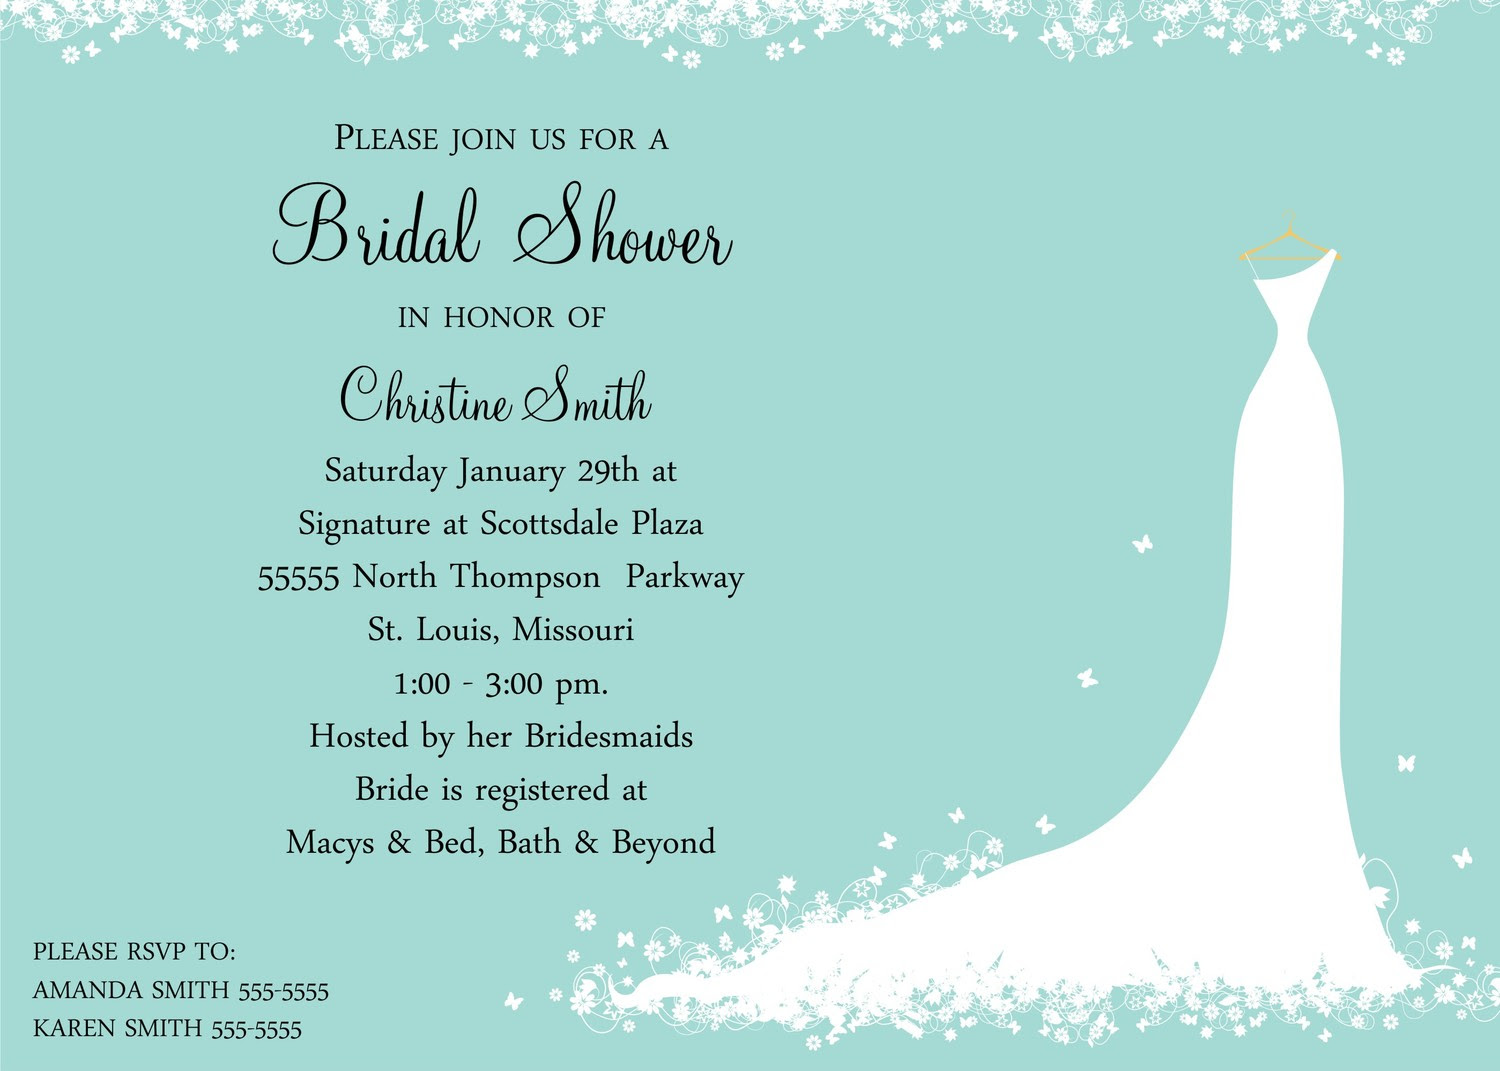 ... bridal shower party themes bridal shower party ideas bridal shower